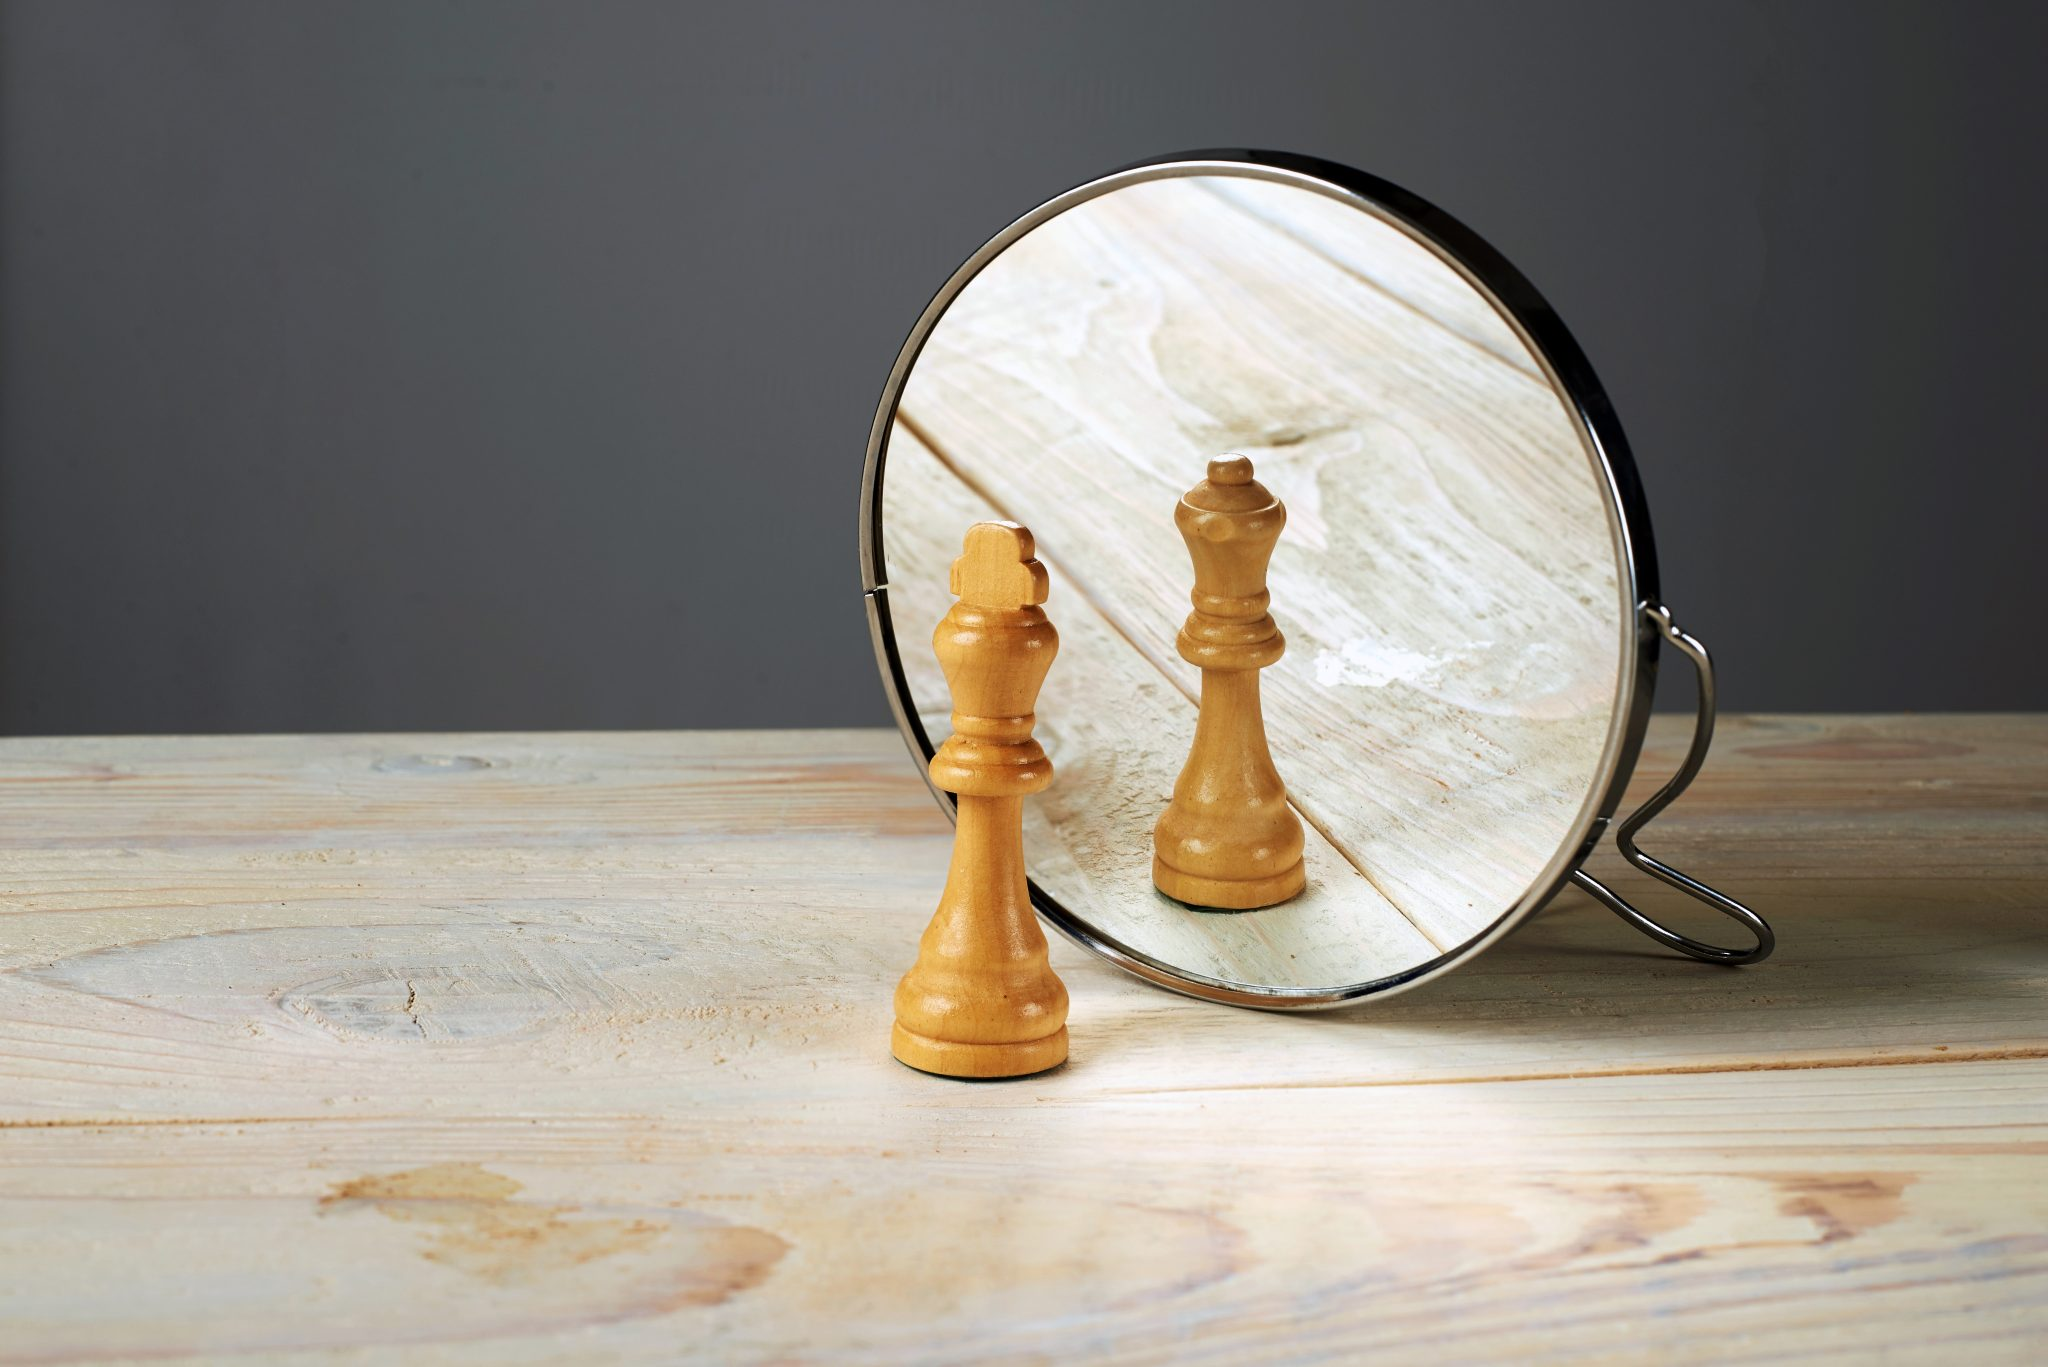 Chess piece in mirror